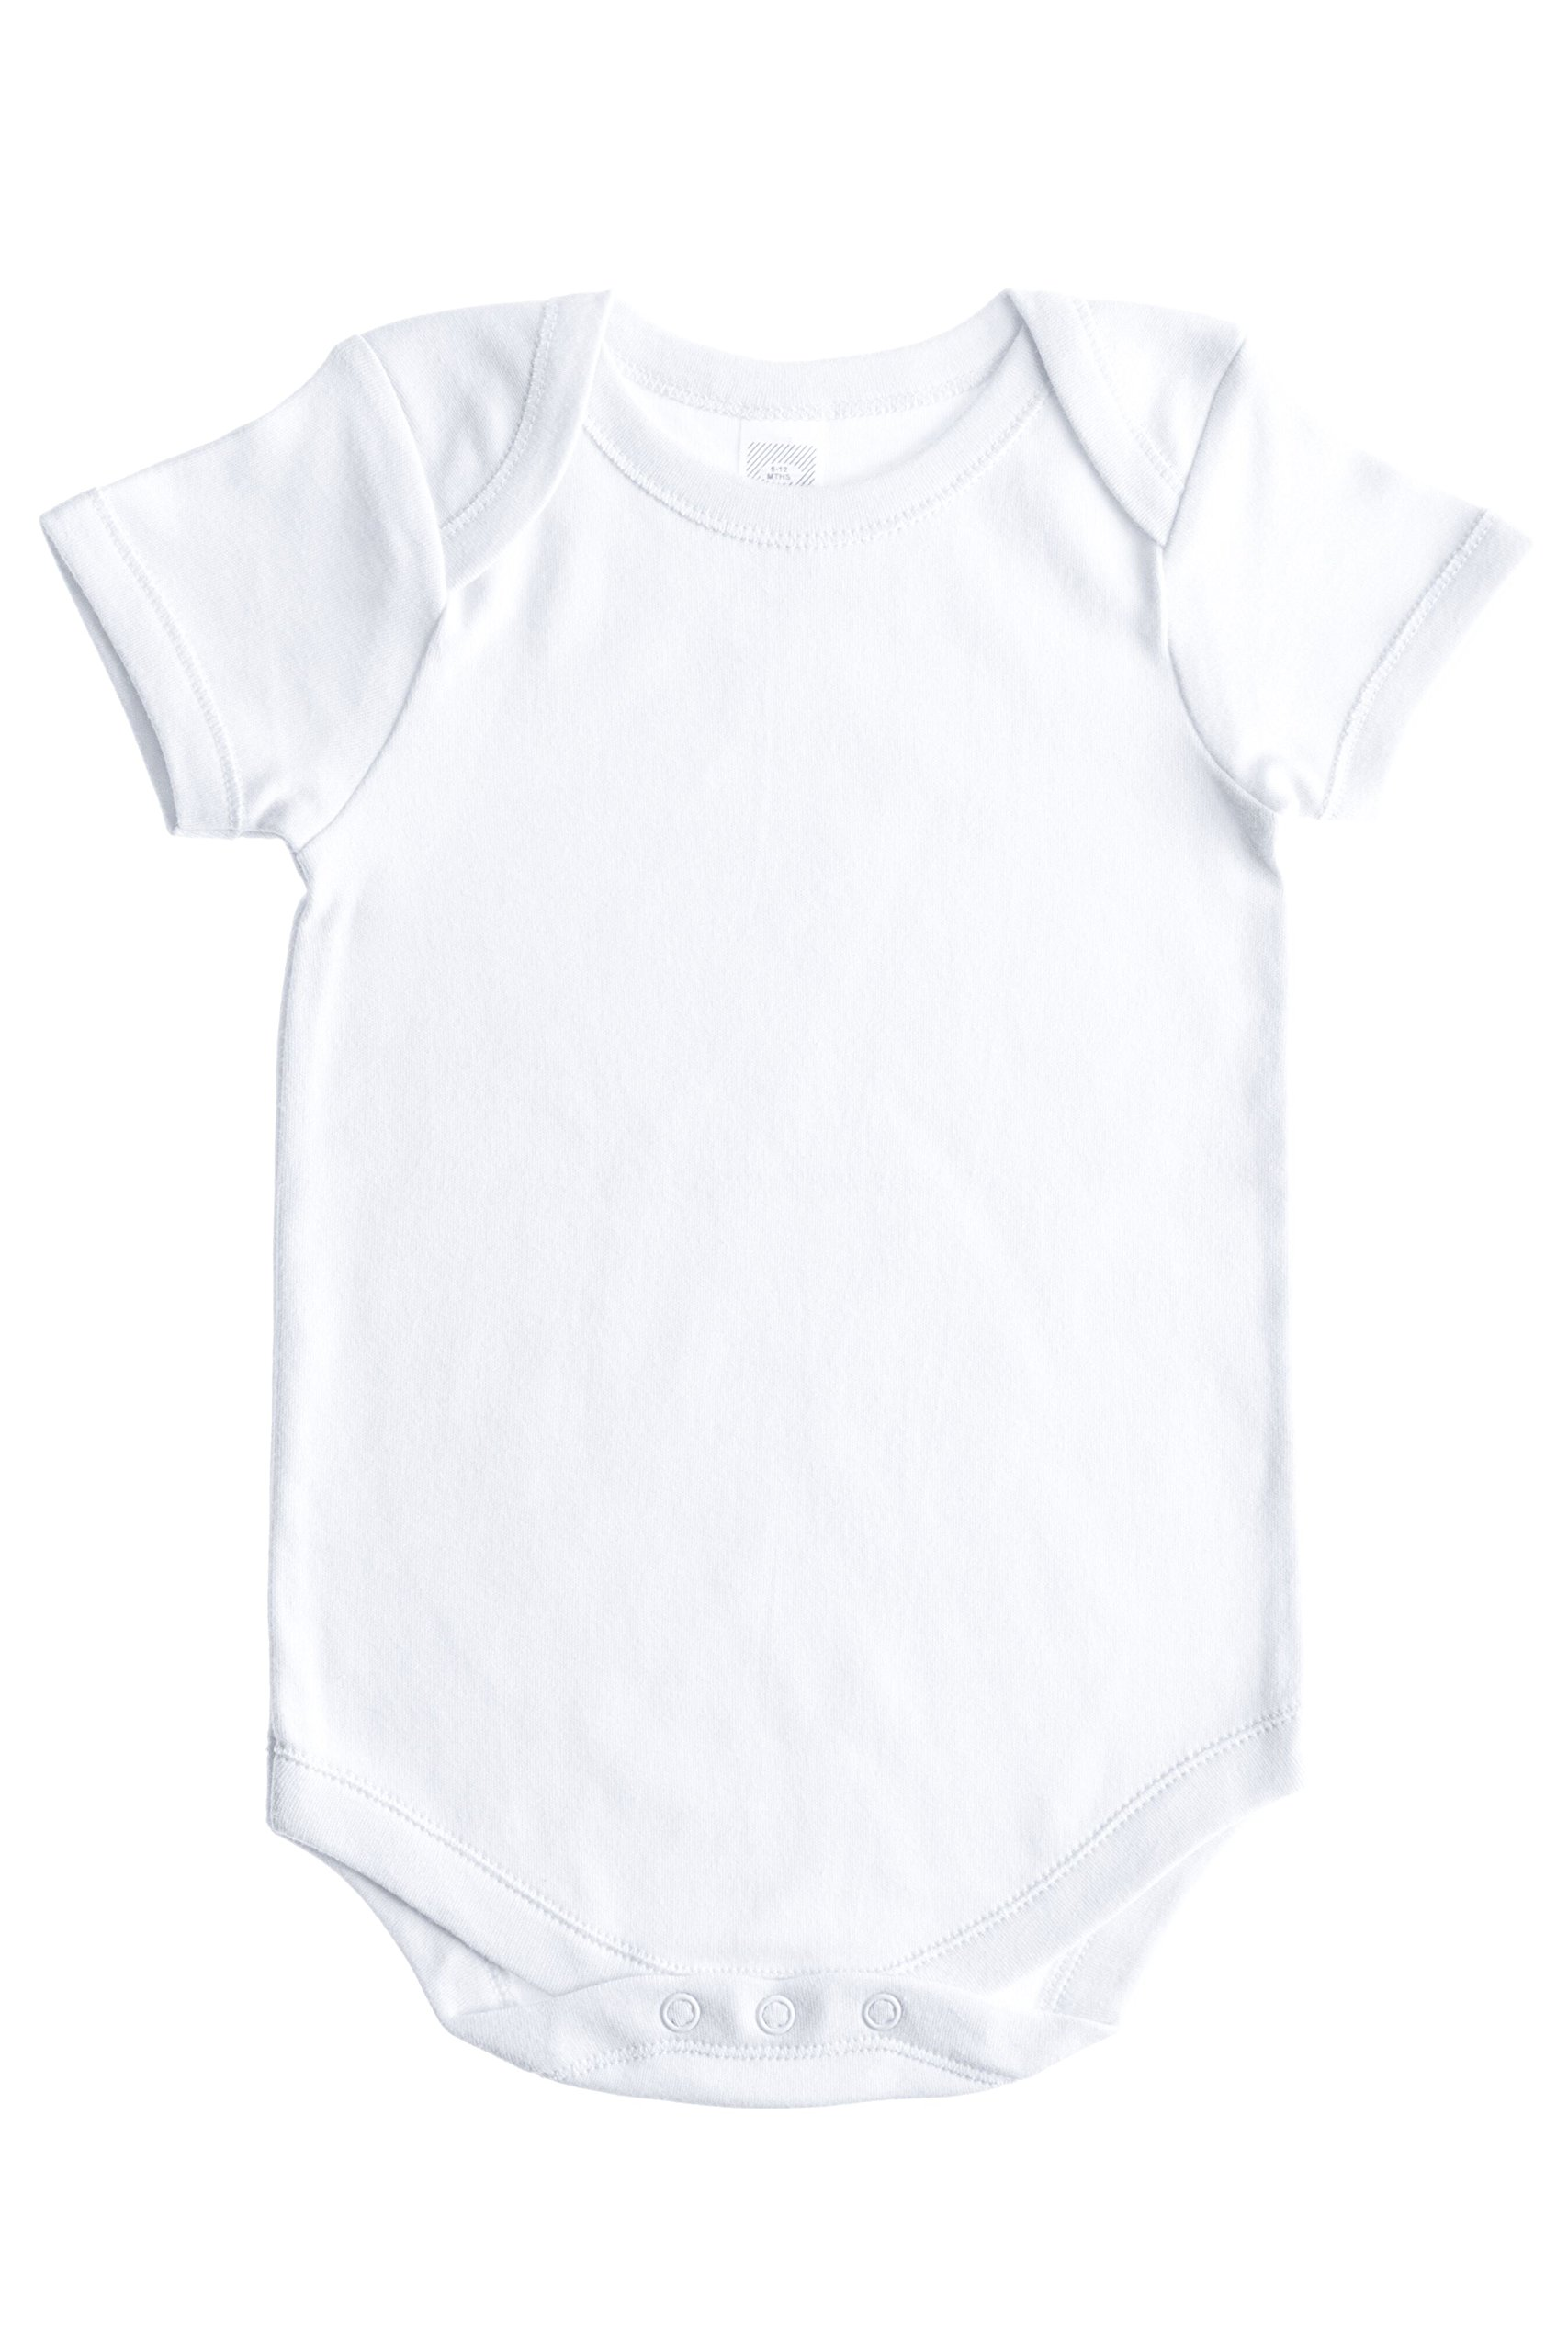 Baby Jay Soft Cotton Onesies, Short Sleeve Lap Shoulder Bodysuit, WSSE White 6-12 5-Pack by Baby Jay (Image #2)